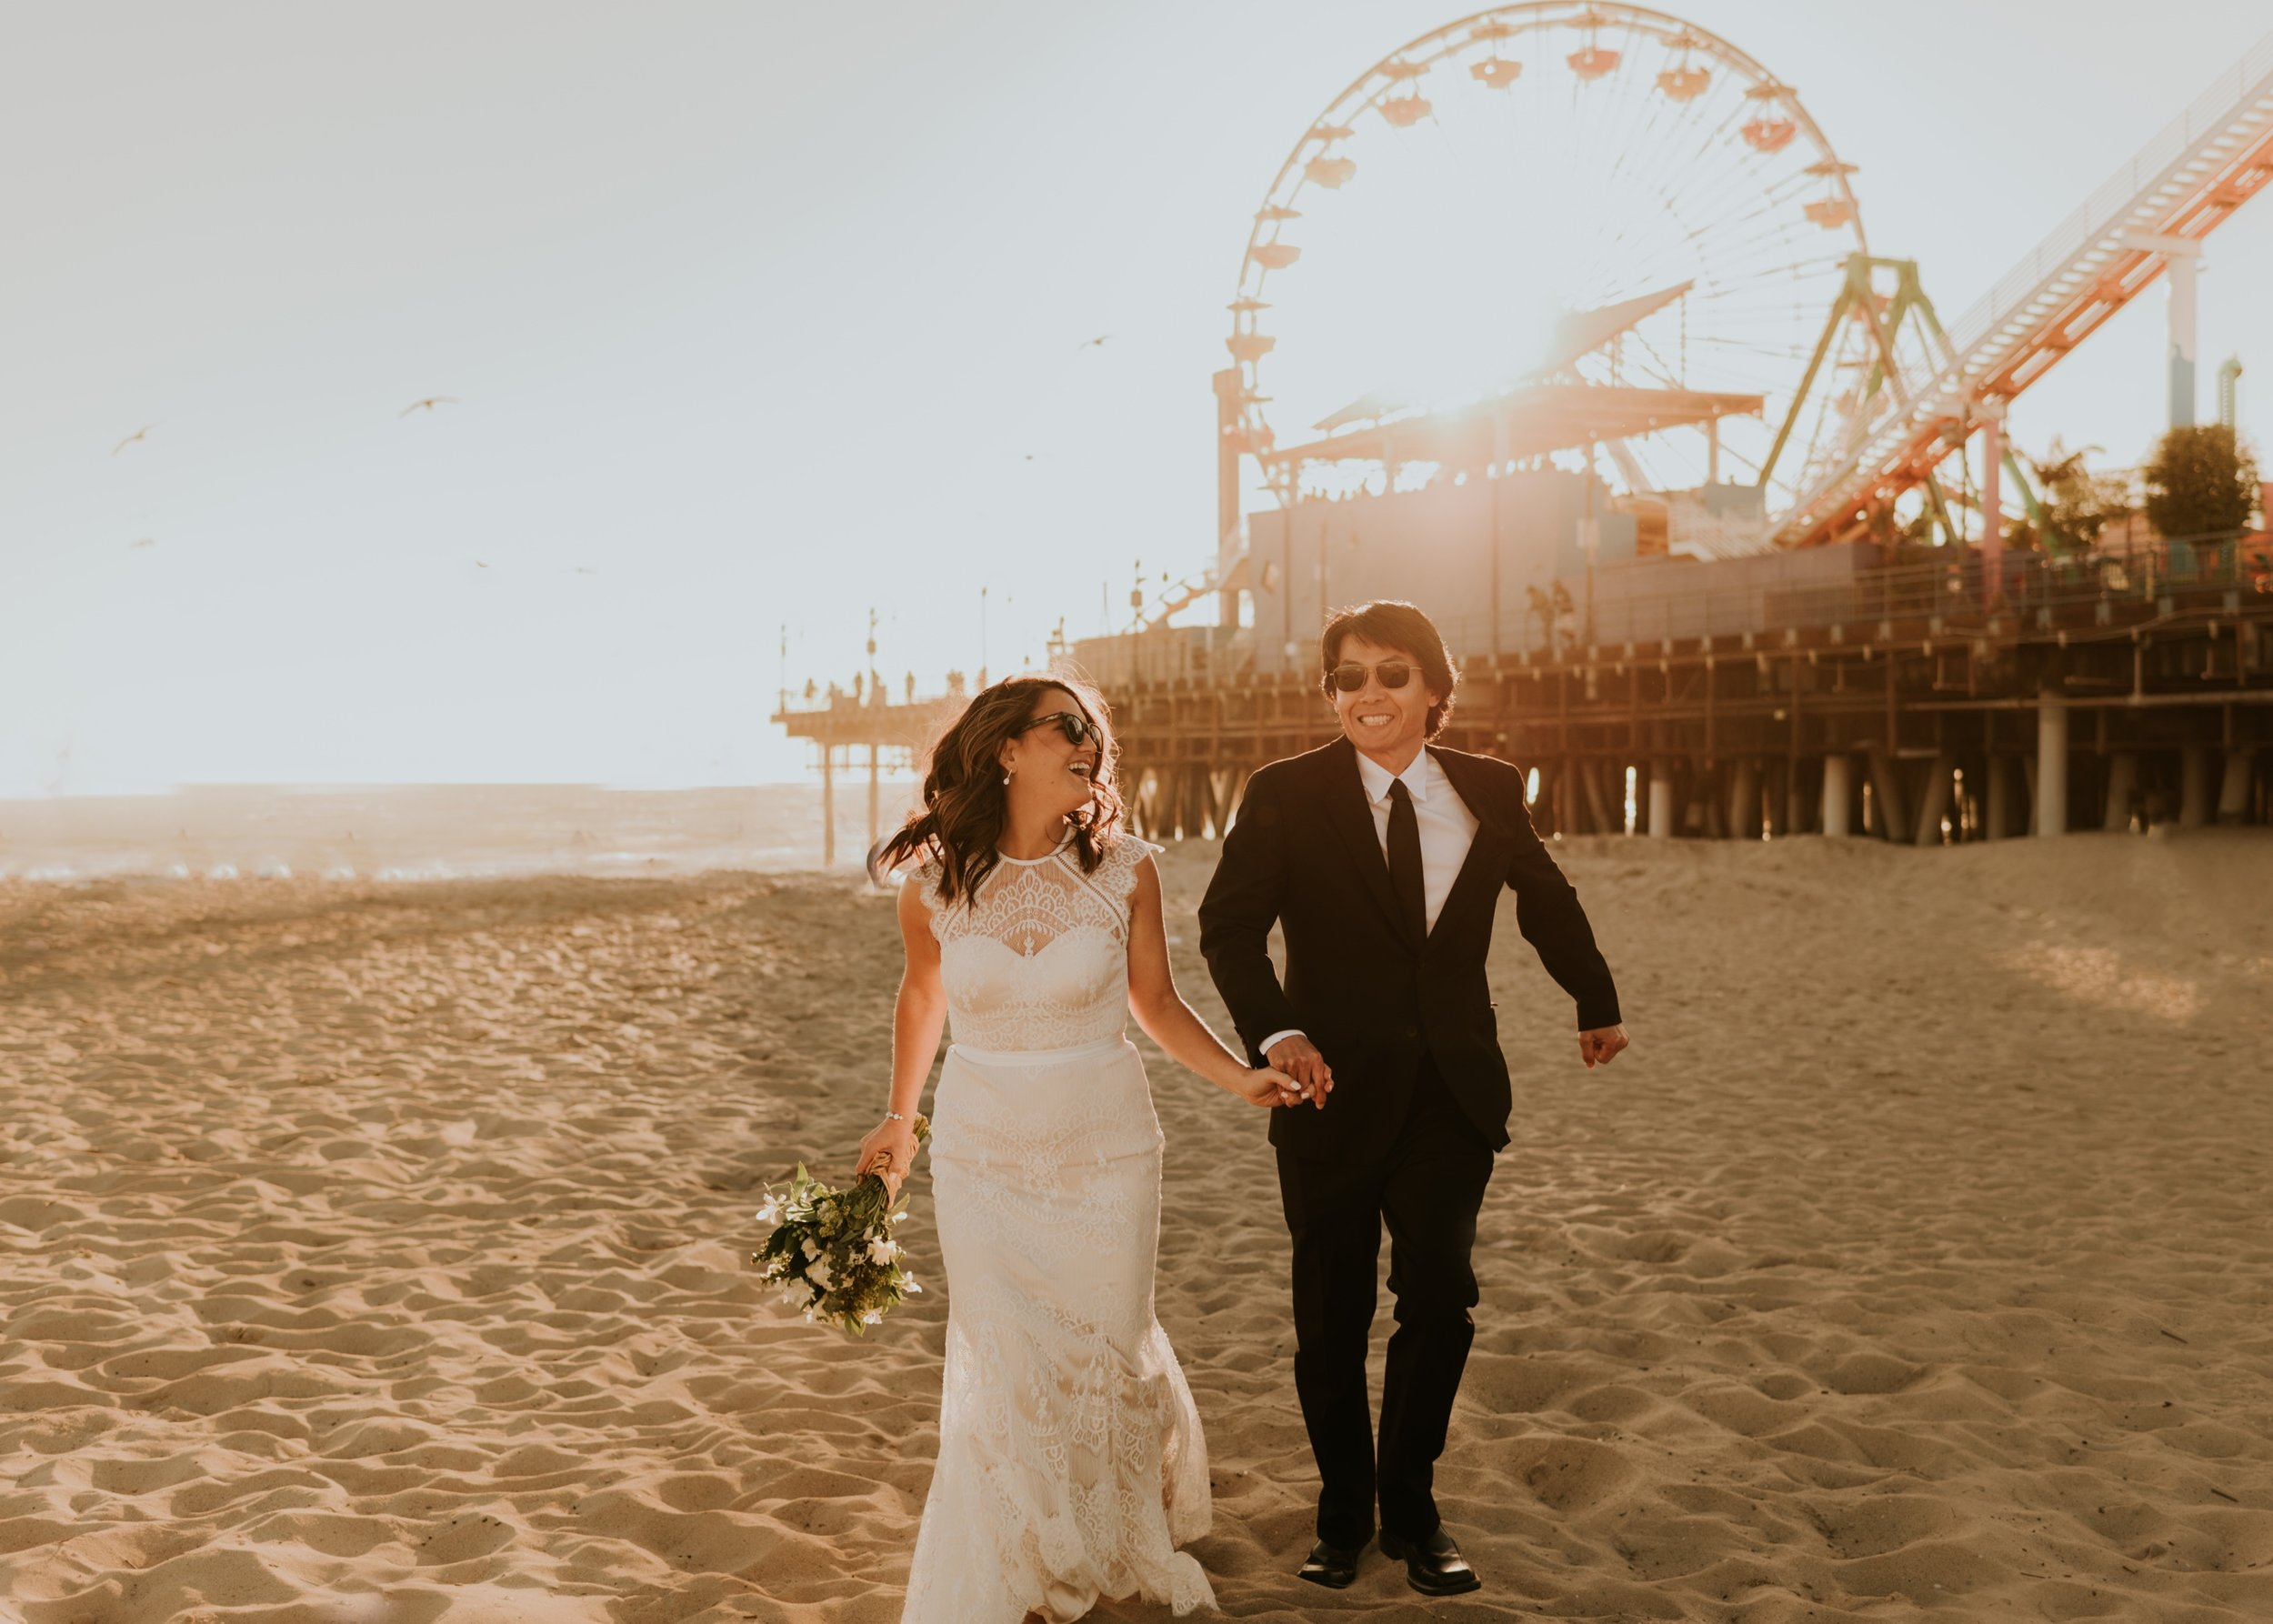 jenn-yasu-santa-monica-elopement-wedding-153.jpg